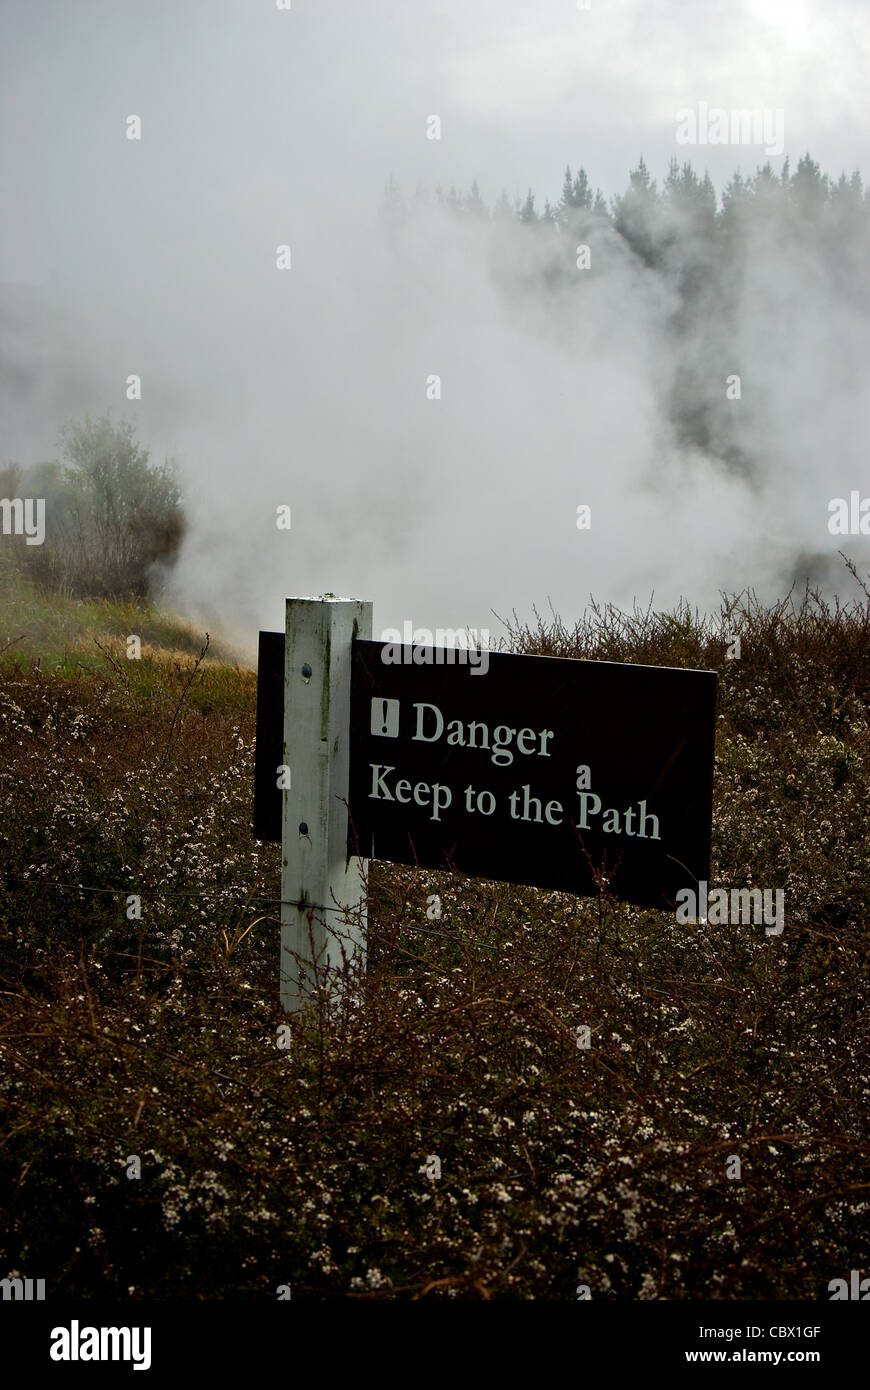 Warning sign Craters of the Moon dangerous geothermal steam vents Lake Taupo New Zealand - Stock Image